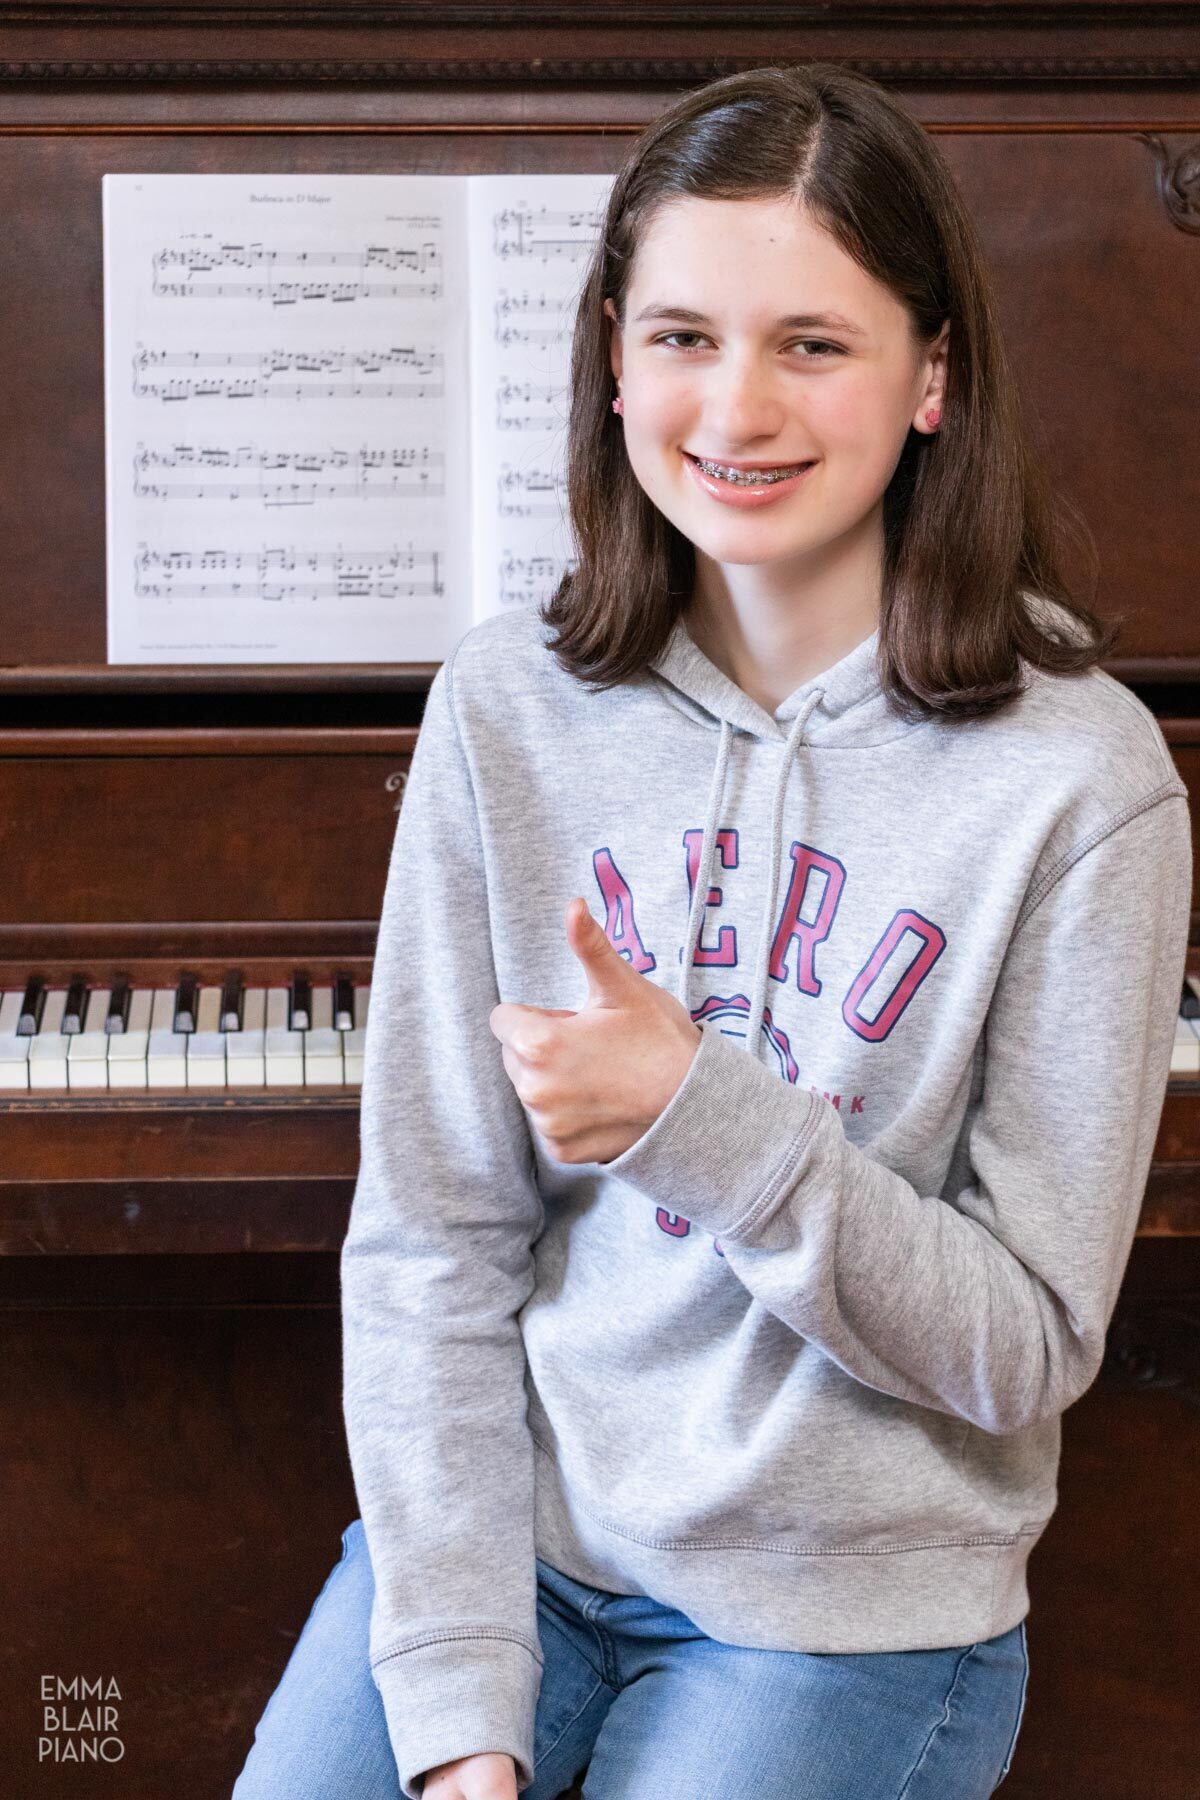 teenage girl smiling and sitting at the piano doing a thumbs up